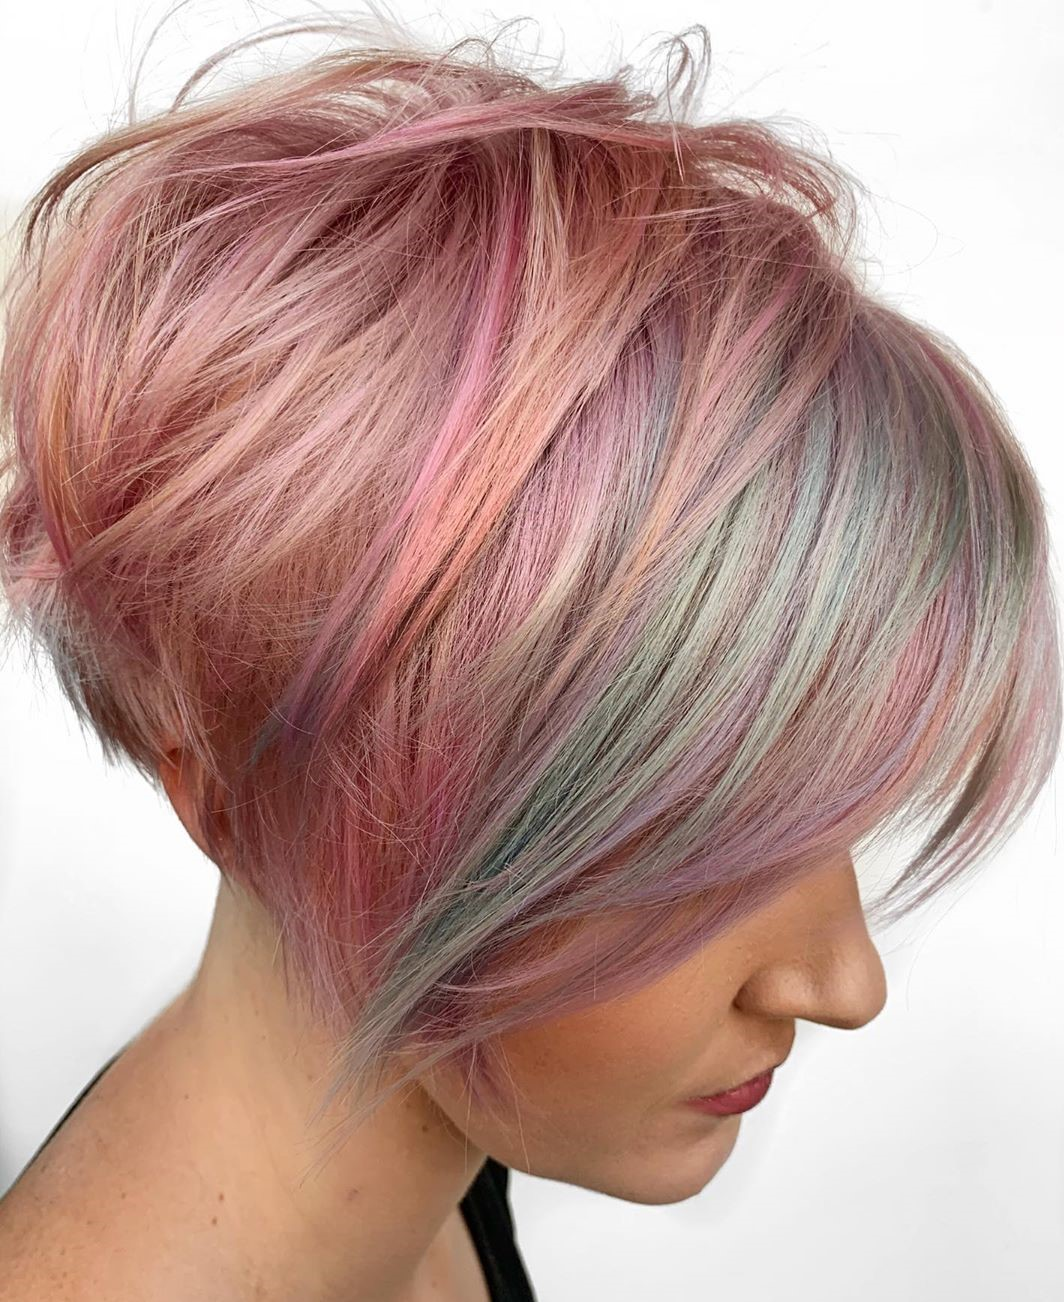 Pastel Pink and Blue Balayage